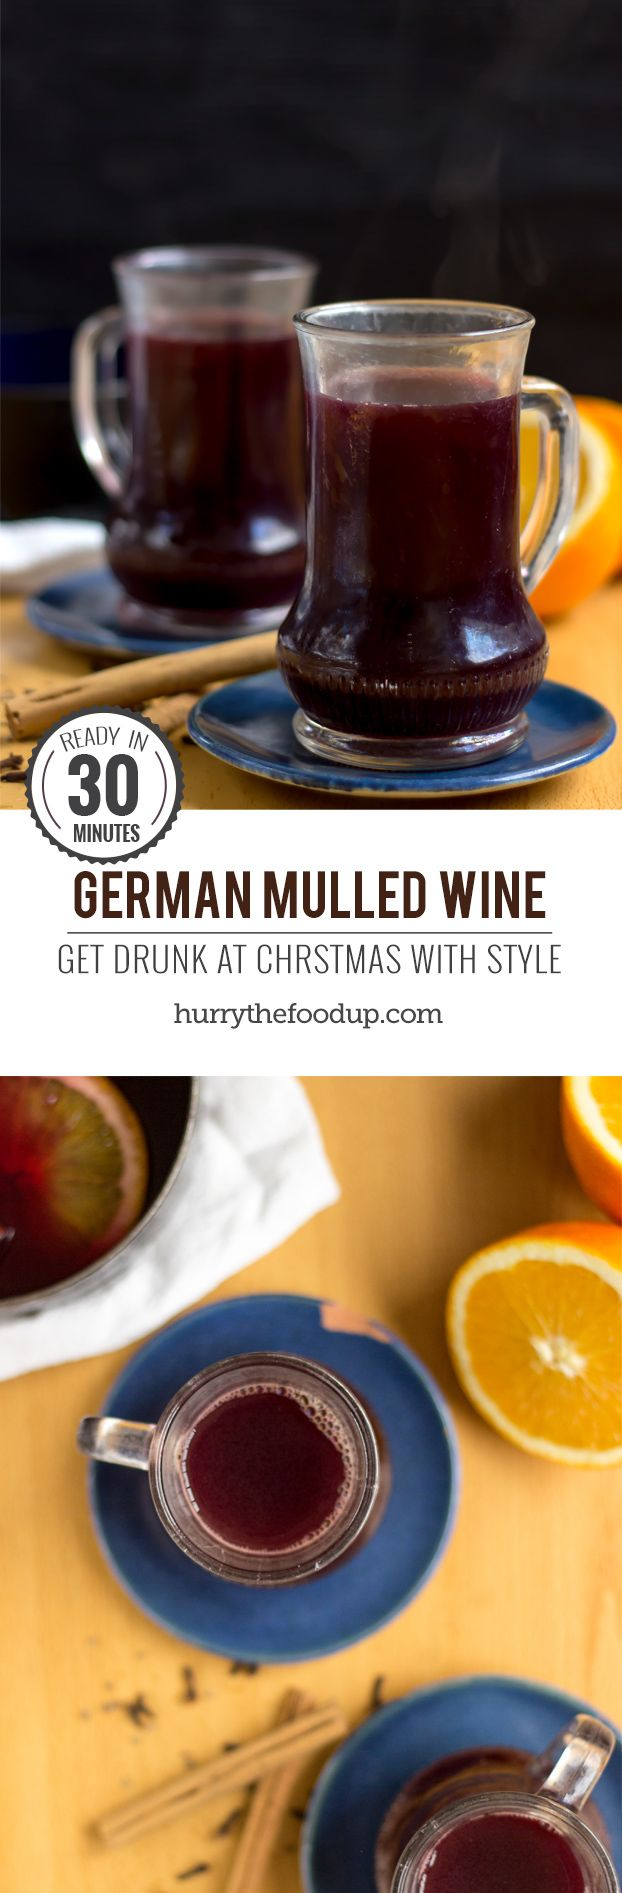 Traditional German Mulled Wine. Ready to drink in 30 minutes | #wine #christmasdrinks | hurrythefoodup.com